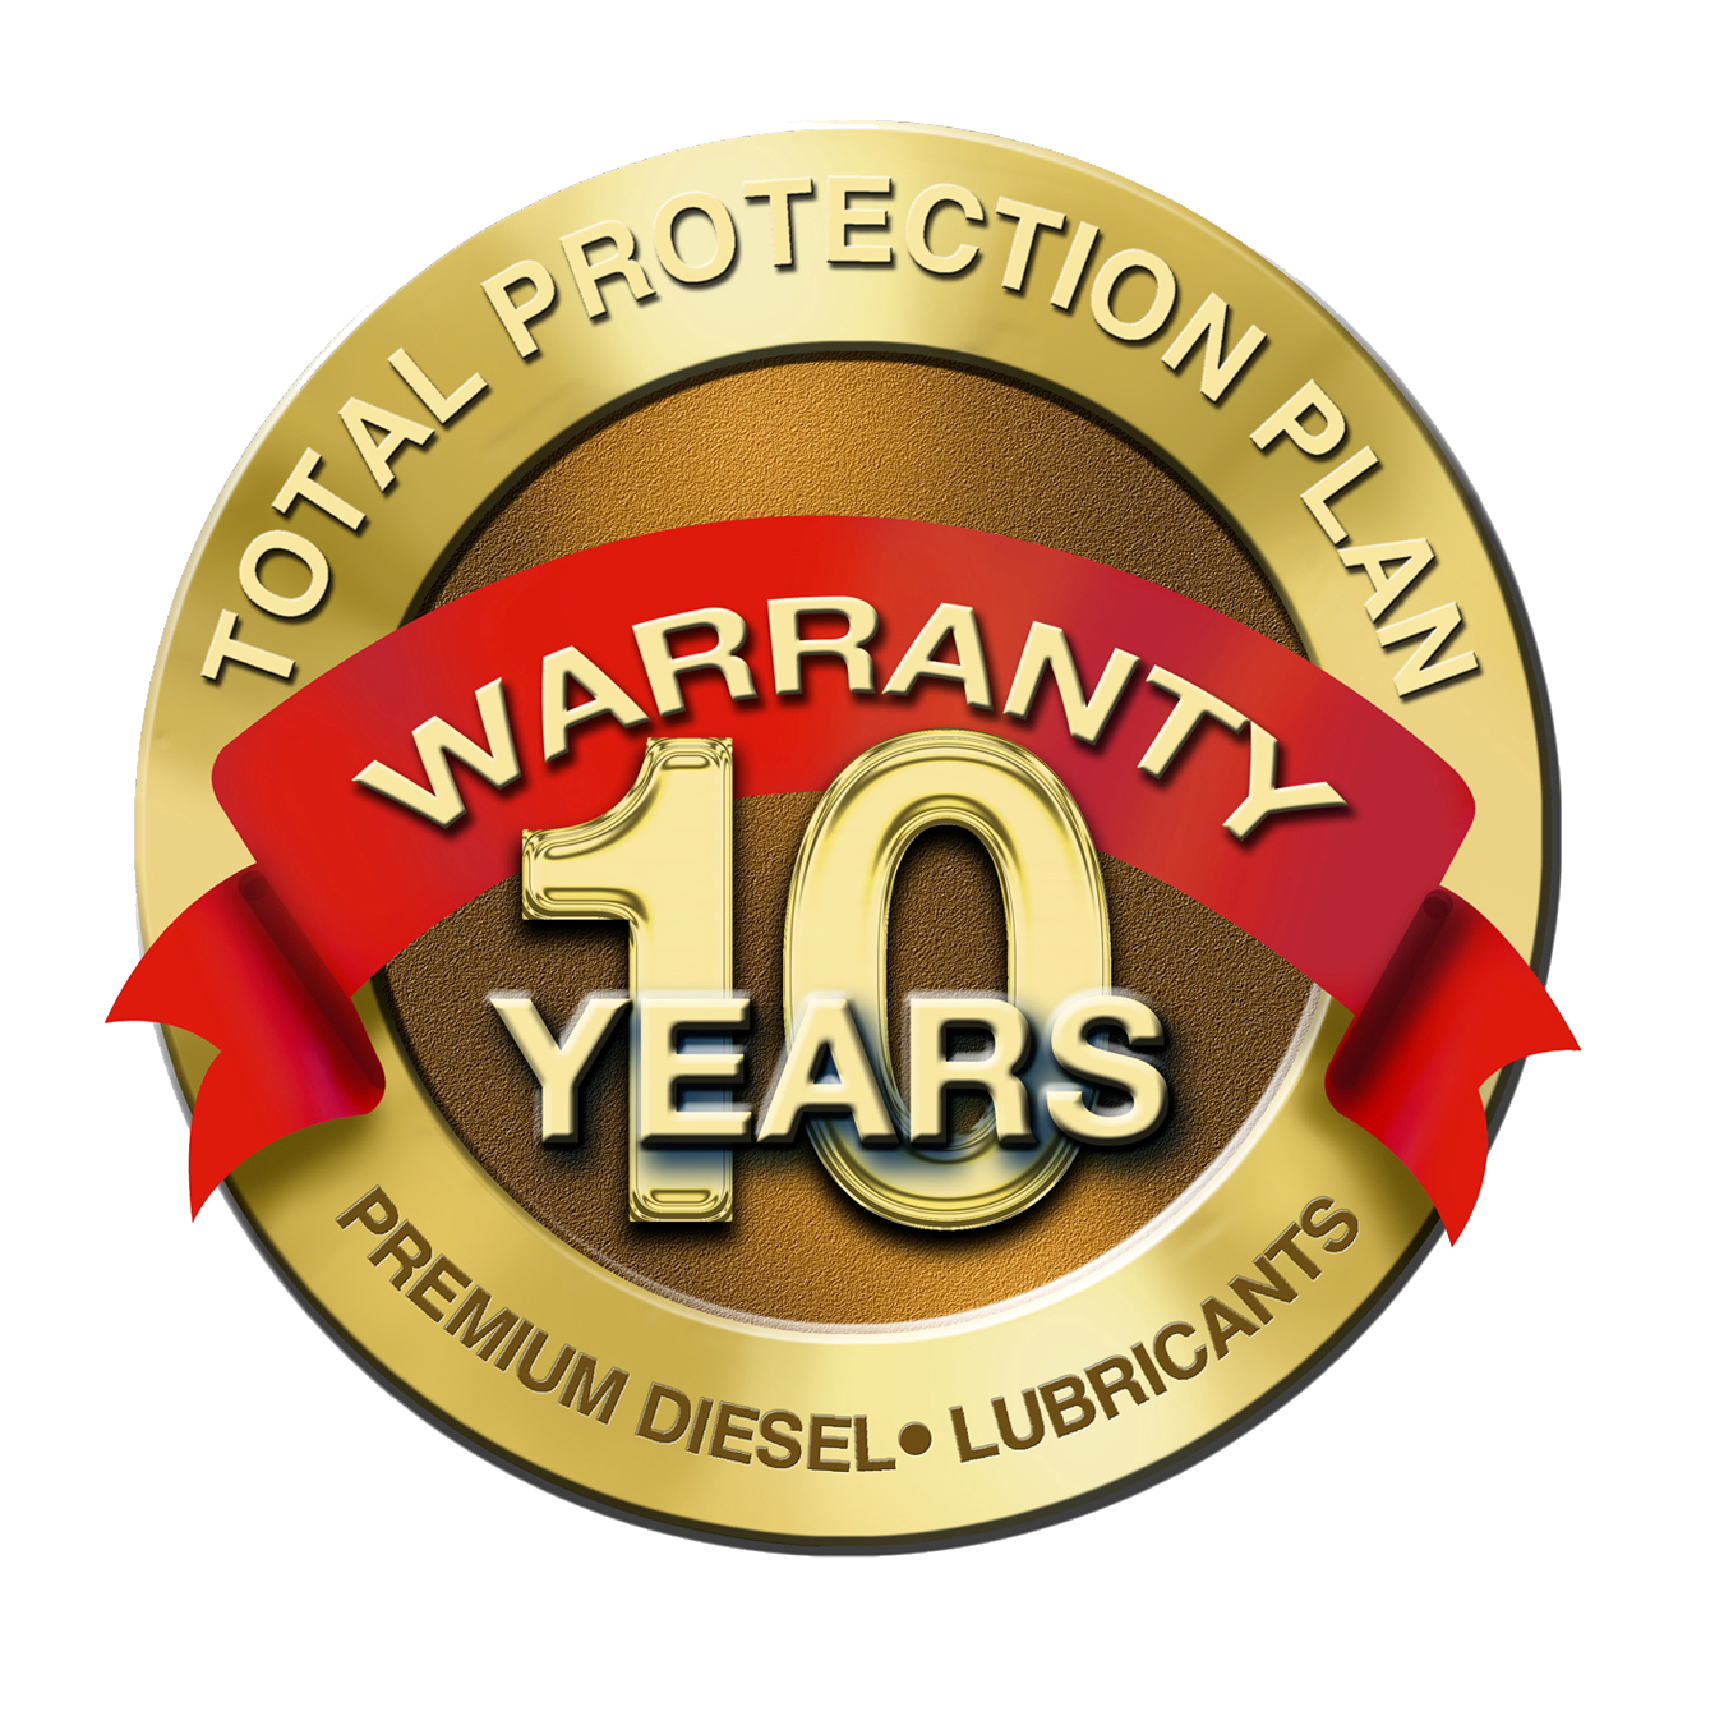 Cenex Total Protection Plan logo